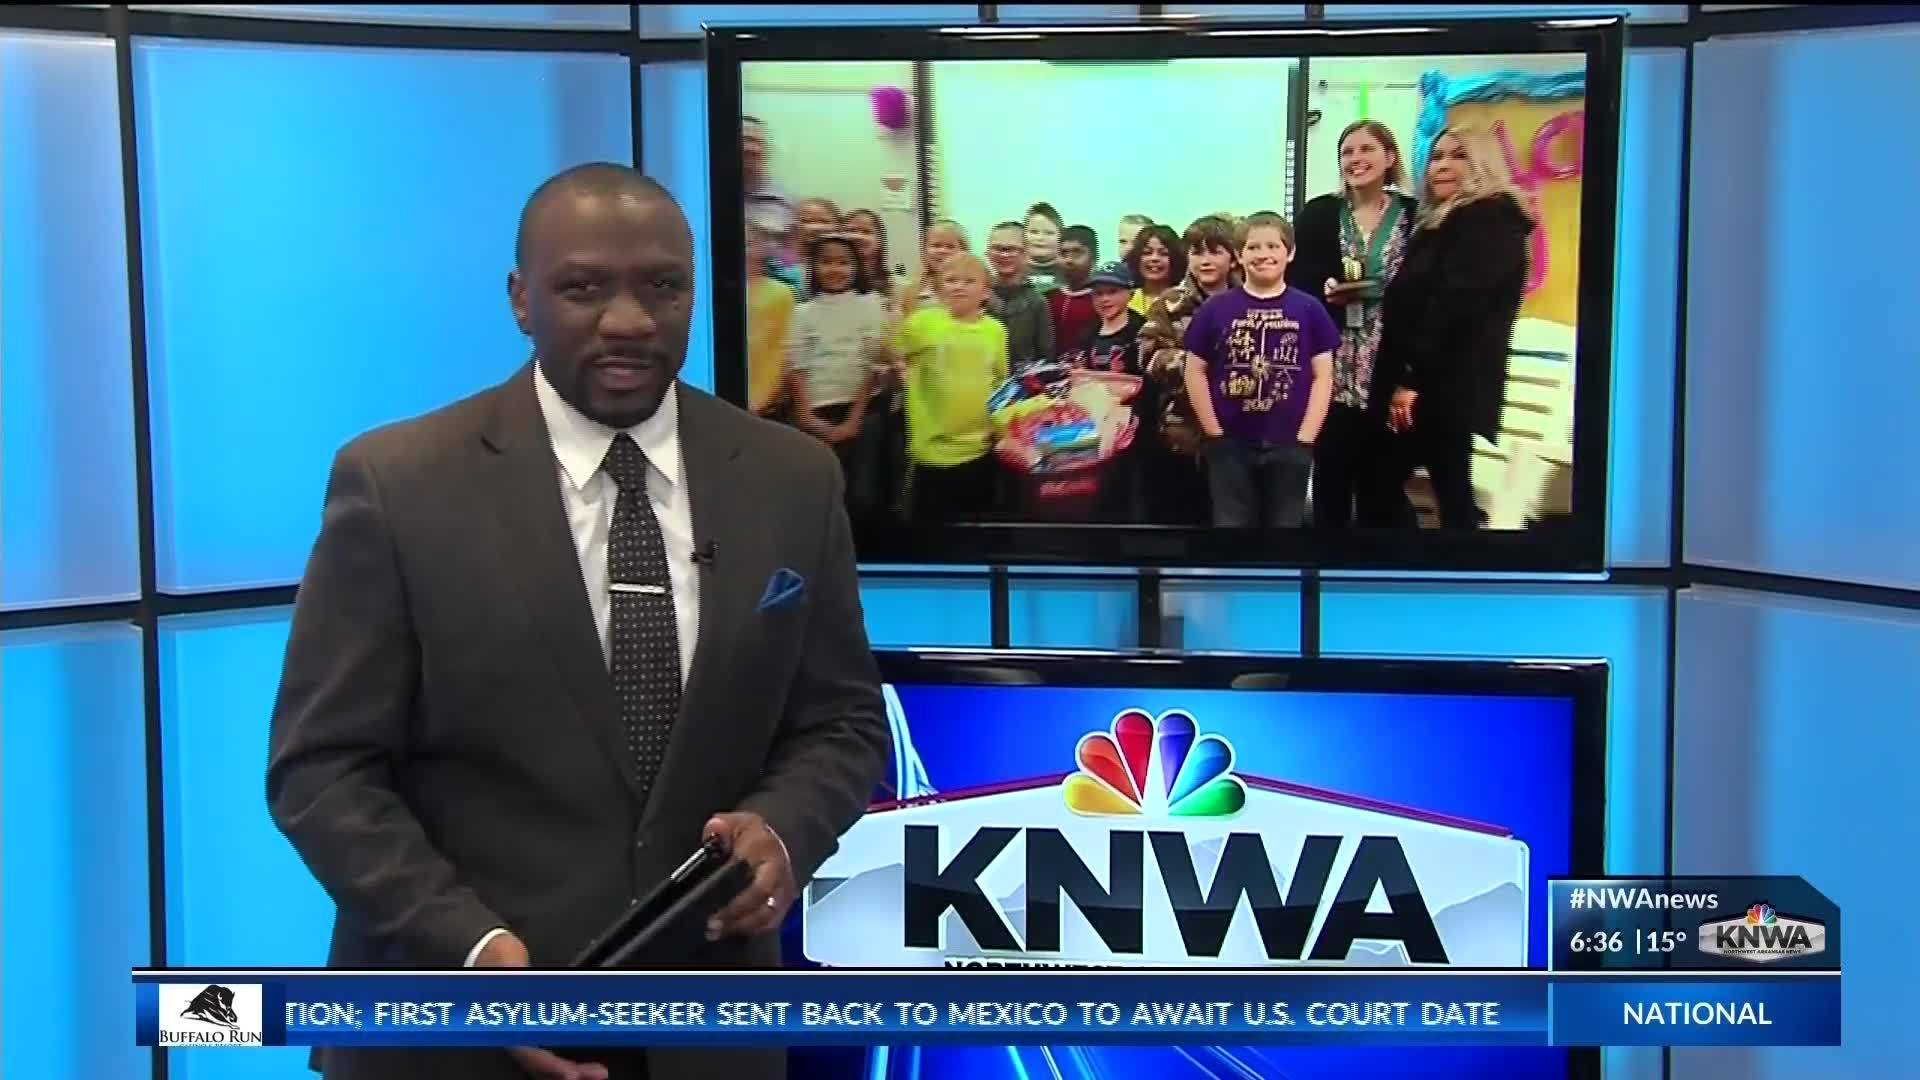 KNWA_Today__January_Golden_Apple_Award_W_4_20190130124935